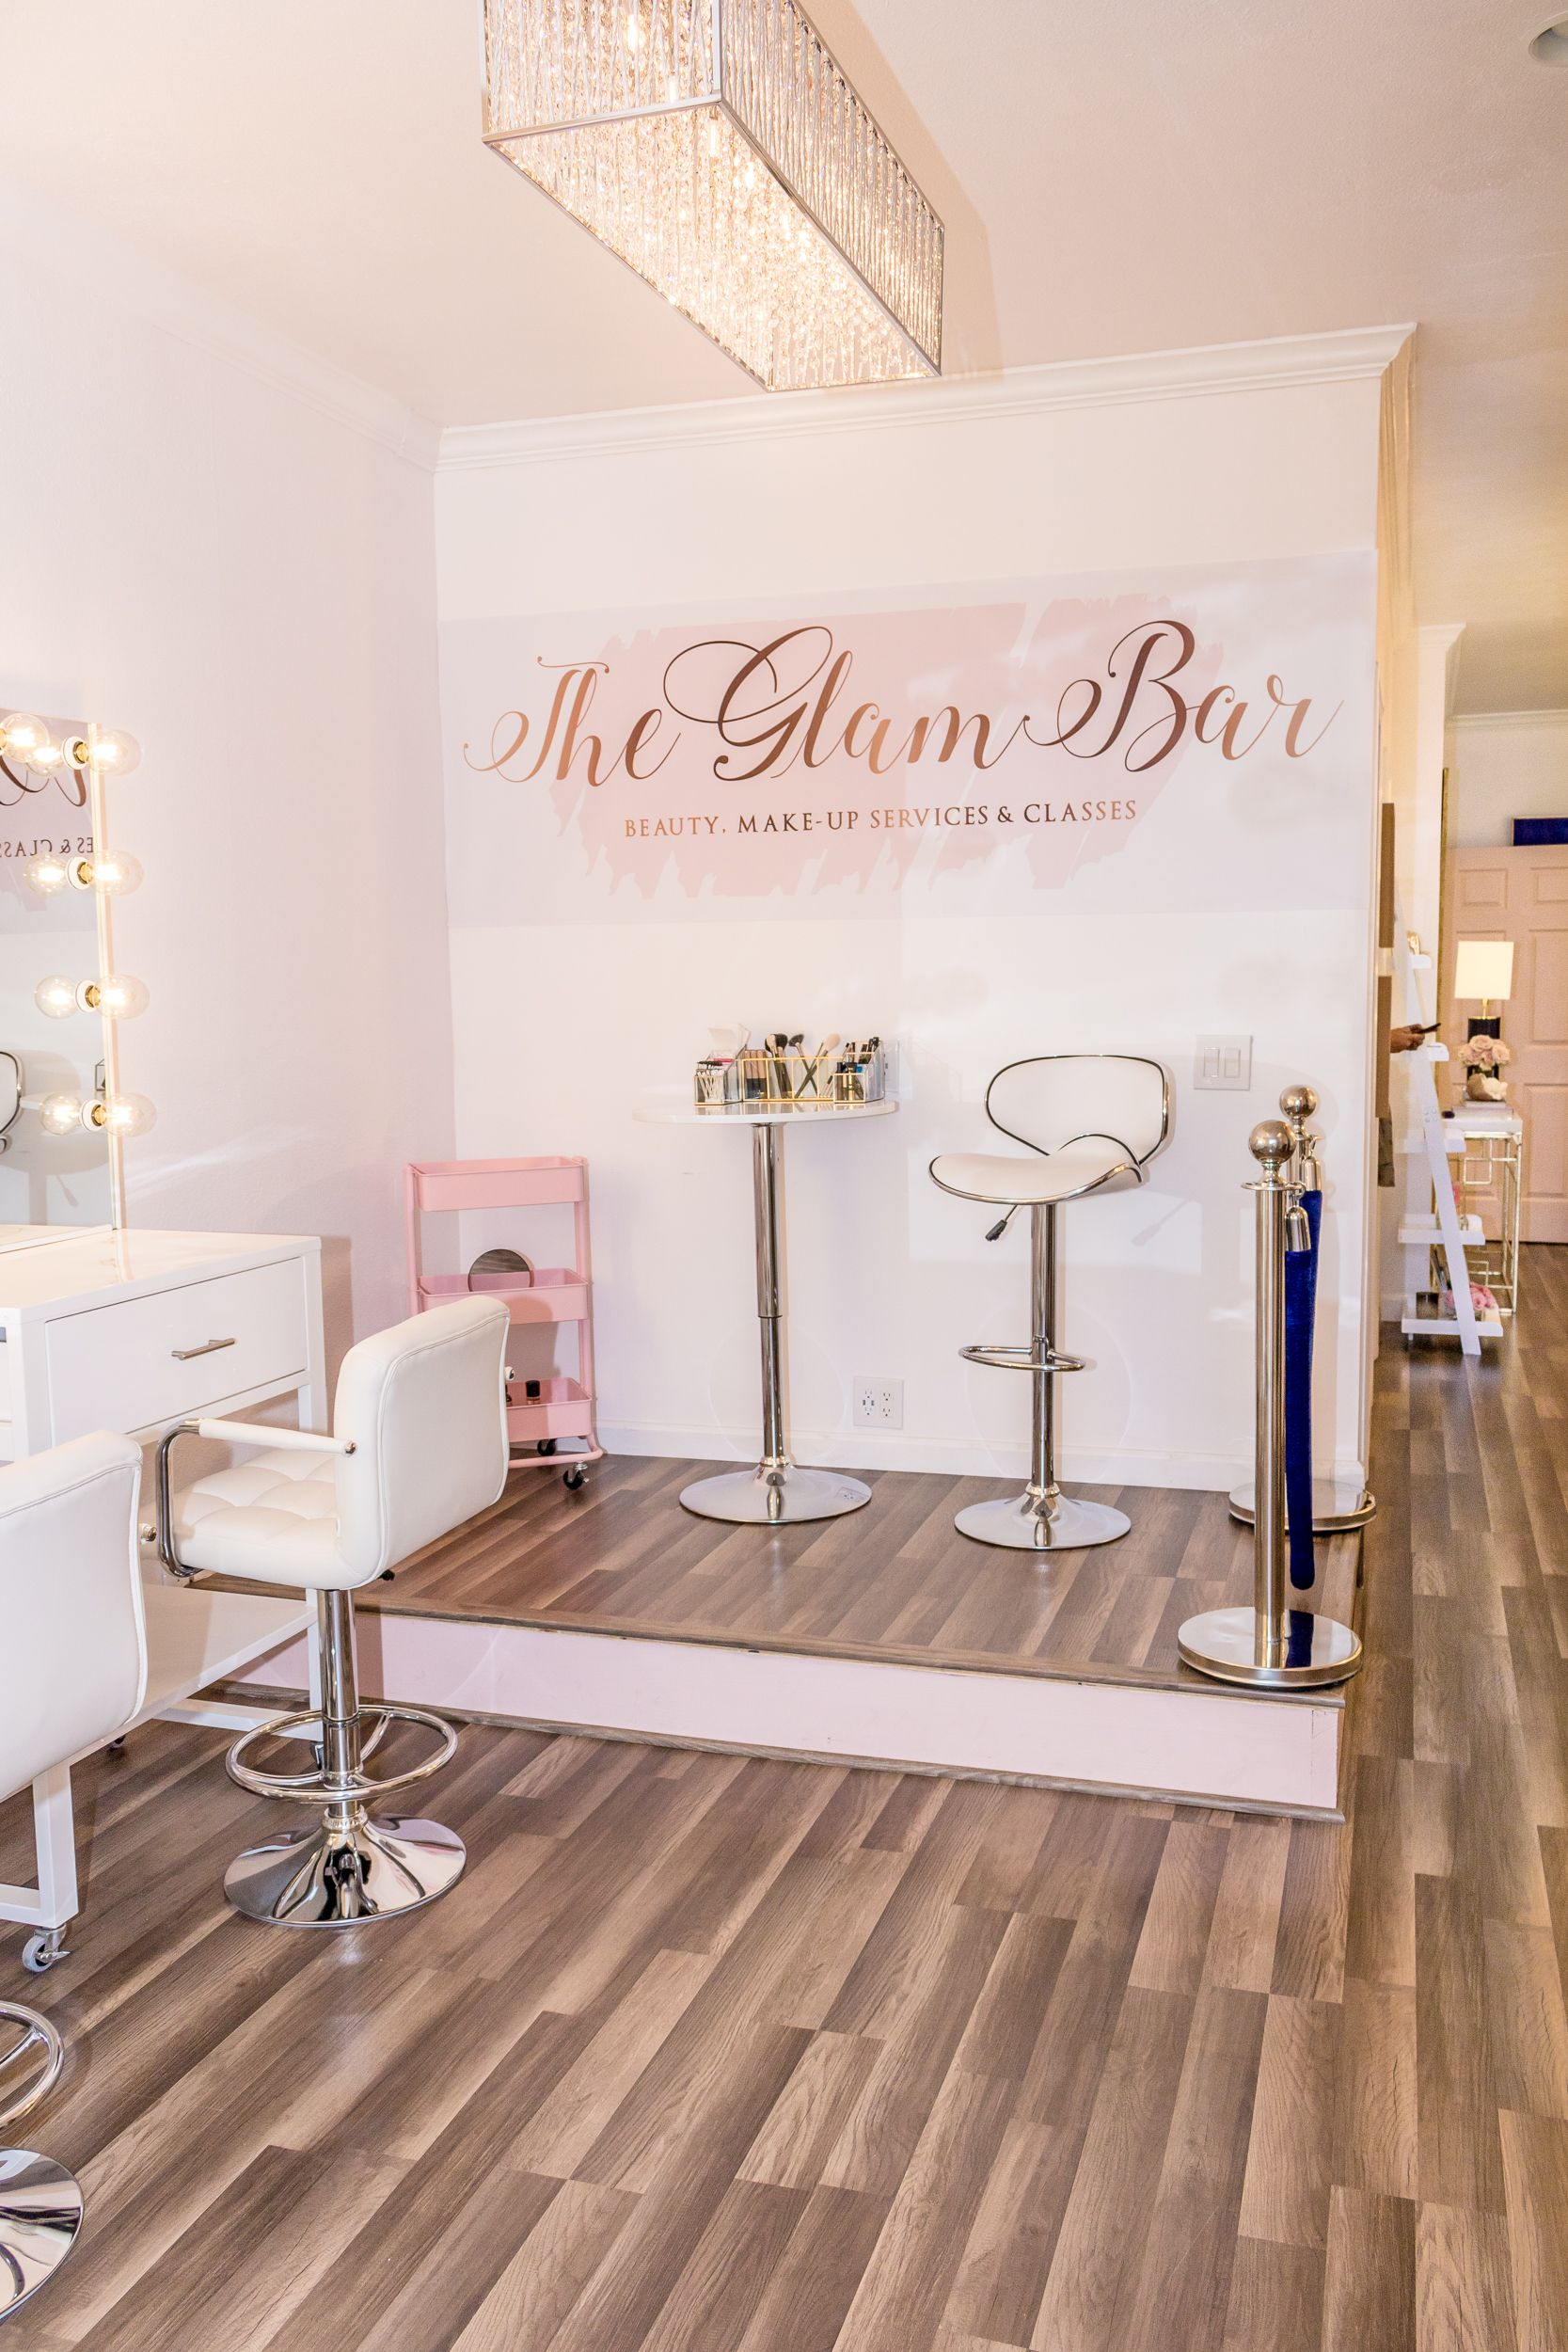 Book Your Next Beauty Experience Beauty Room Salon Salon Interior Design Salon Suites Decor,Most Popular T Shirt Designs